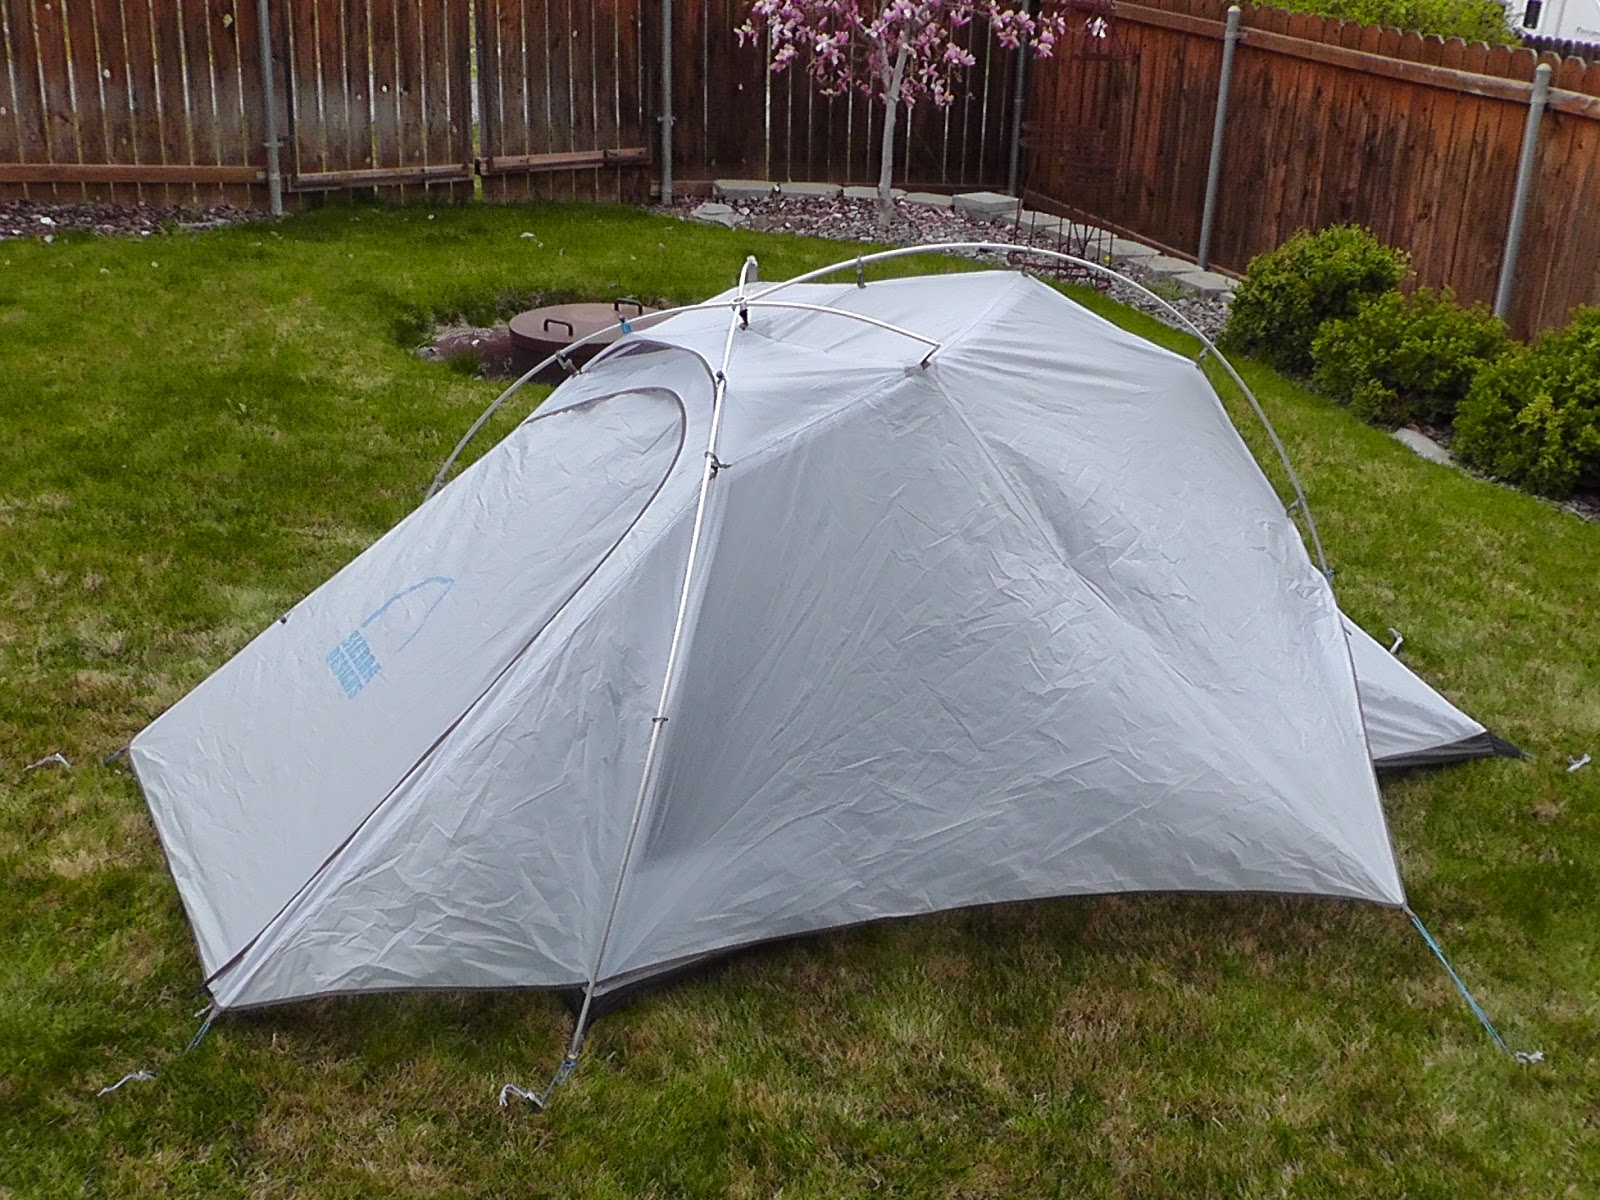 Sierra Designs Mojo 2 tent & Mexico to Canada. PCT 2014: The Gear